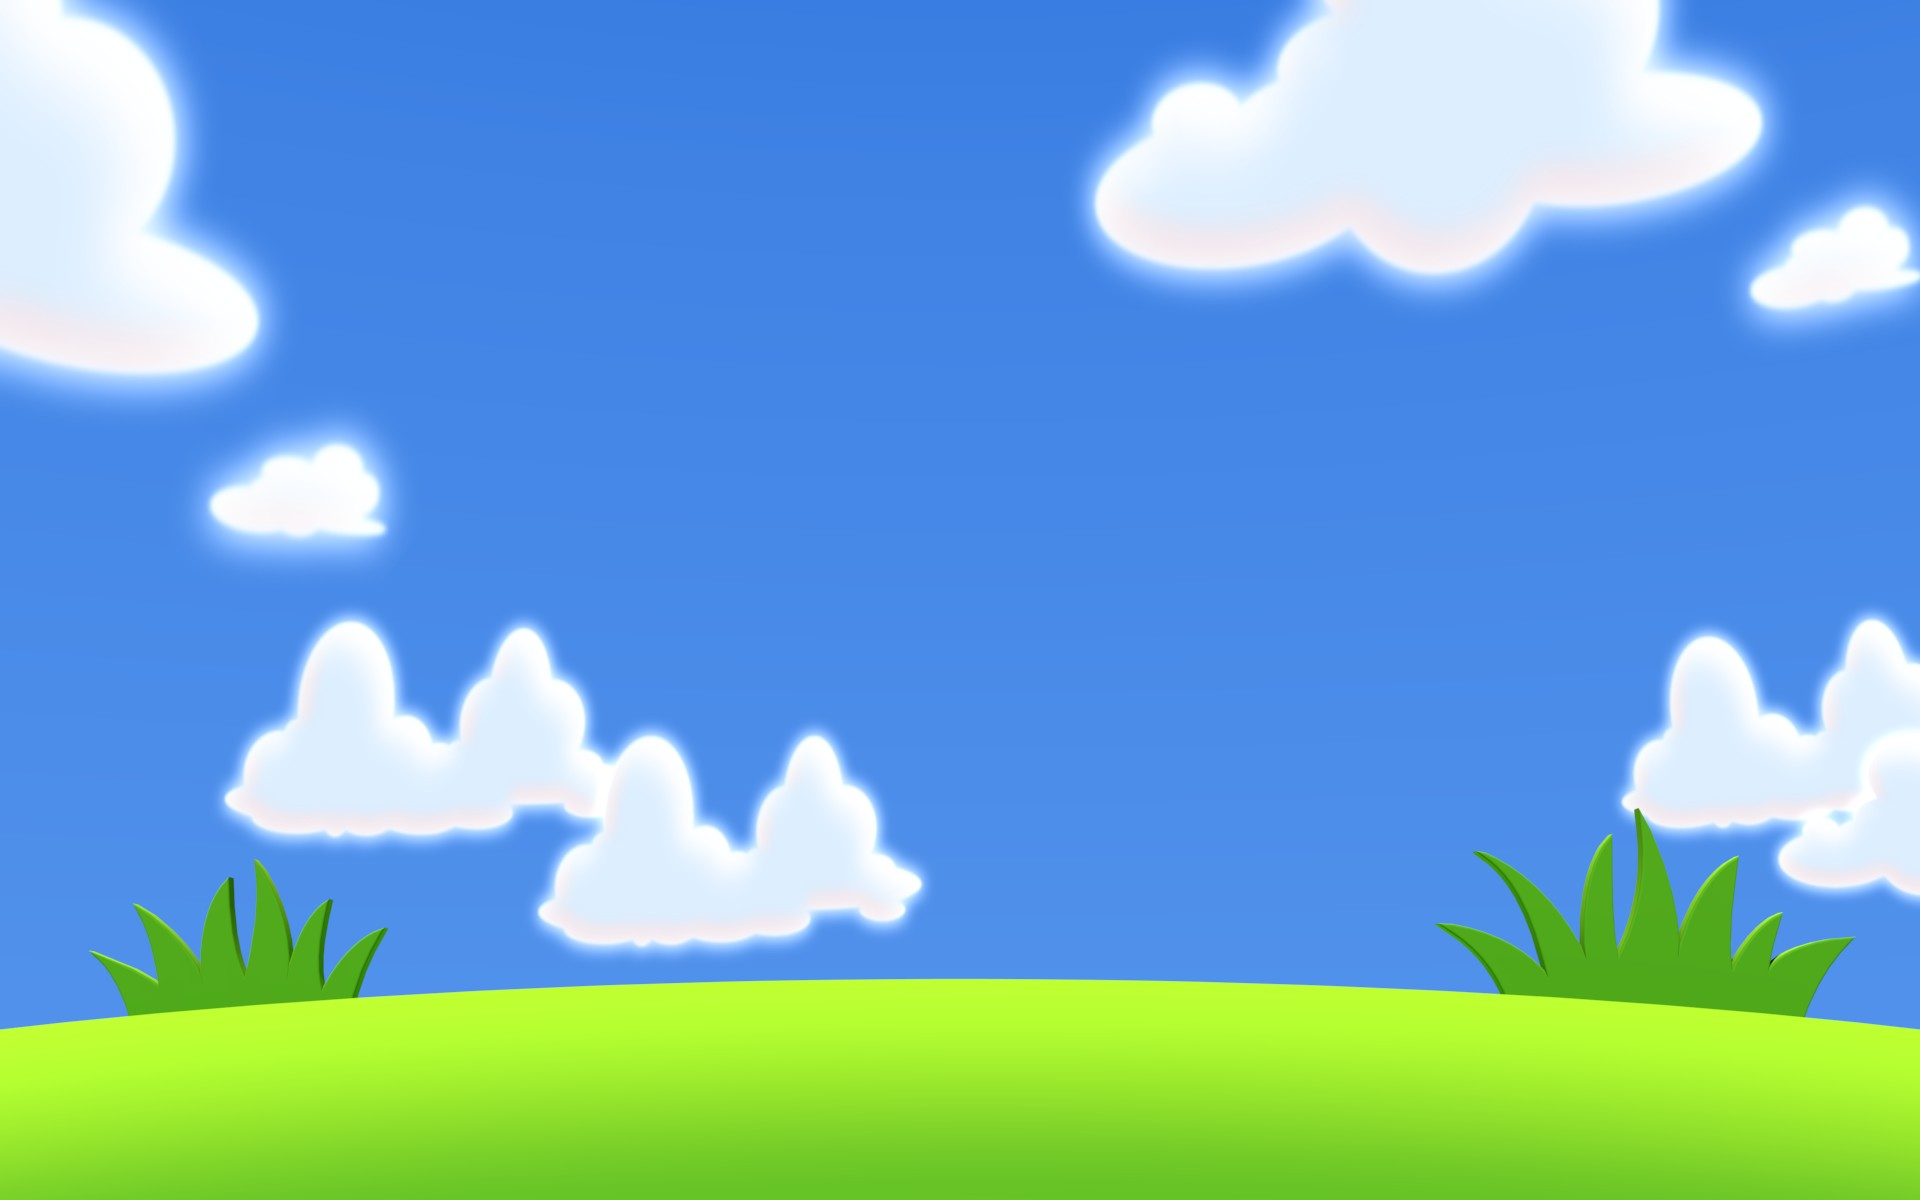 Sky clipart #6, Download drawings